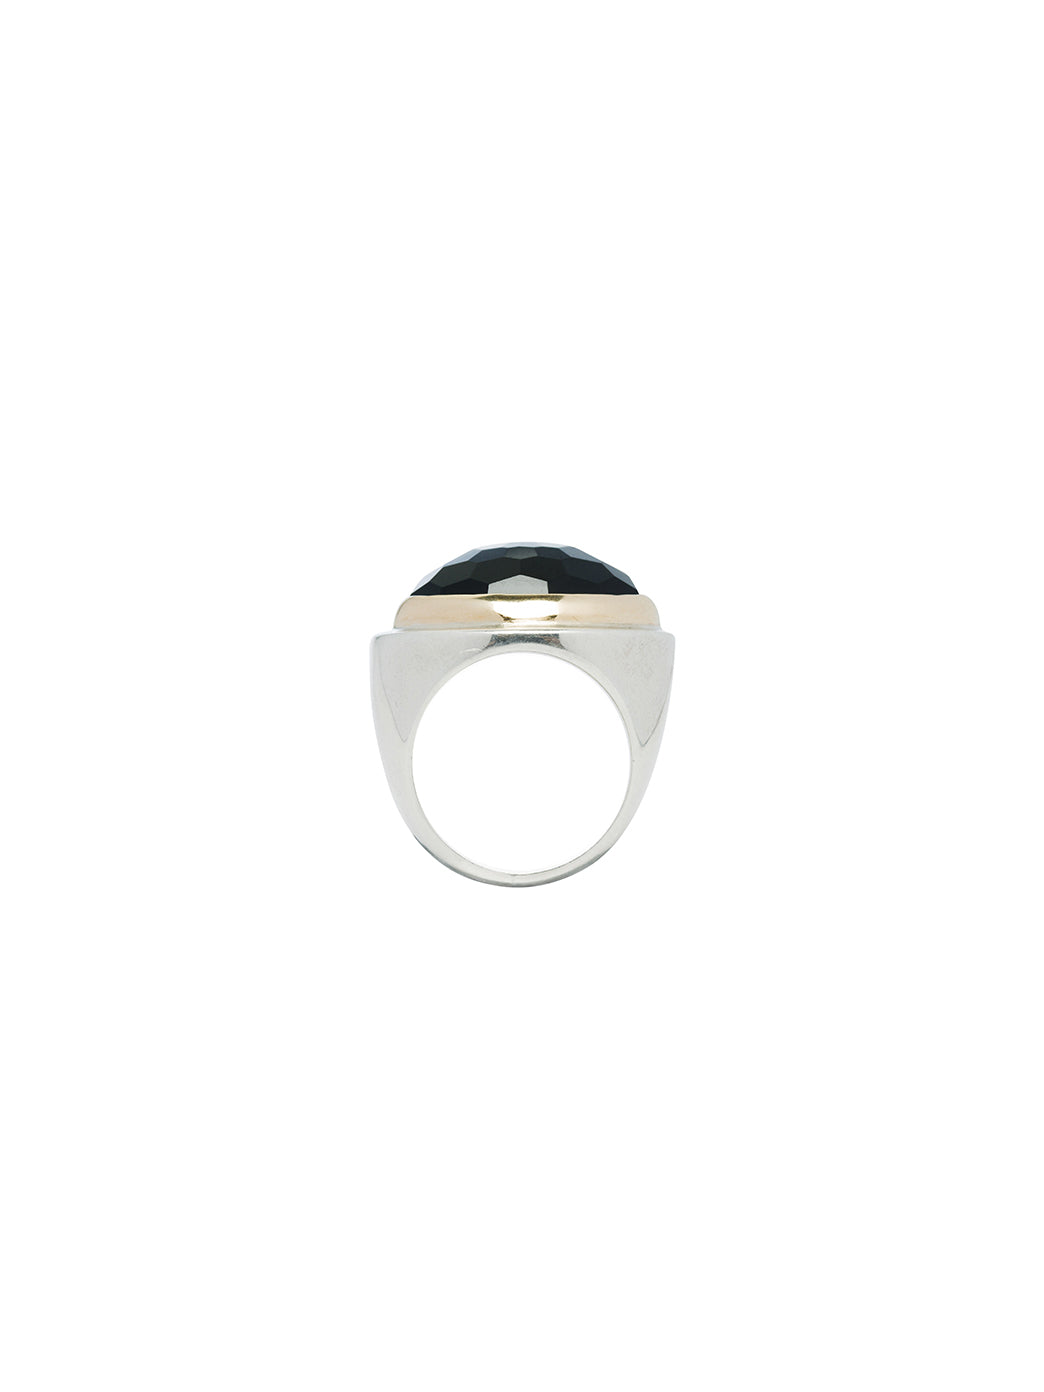 Fiorina Jewellery Bullseye Ring Black Onyx Side View